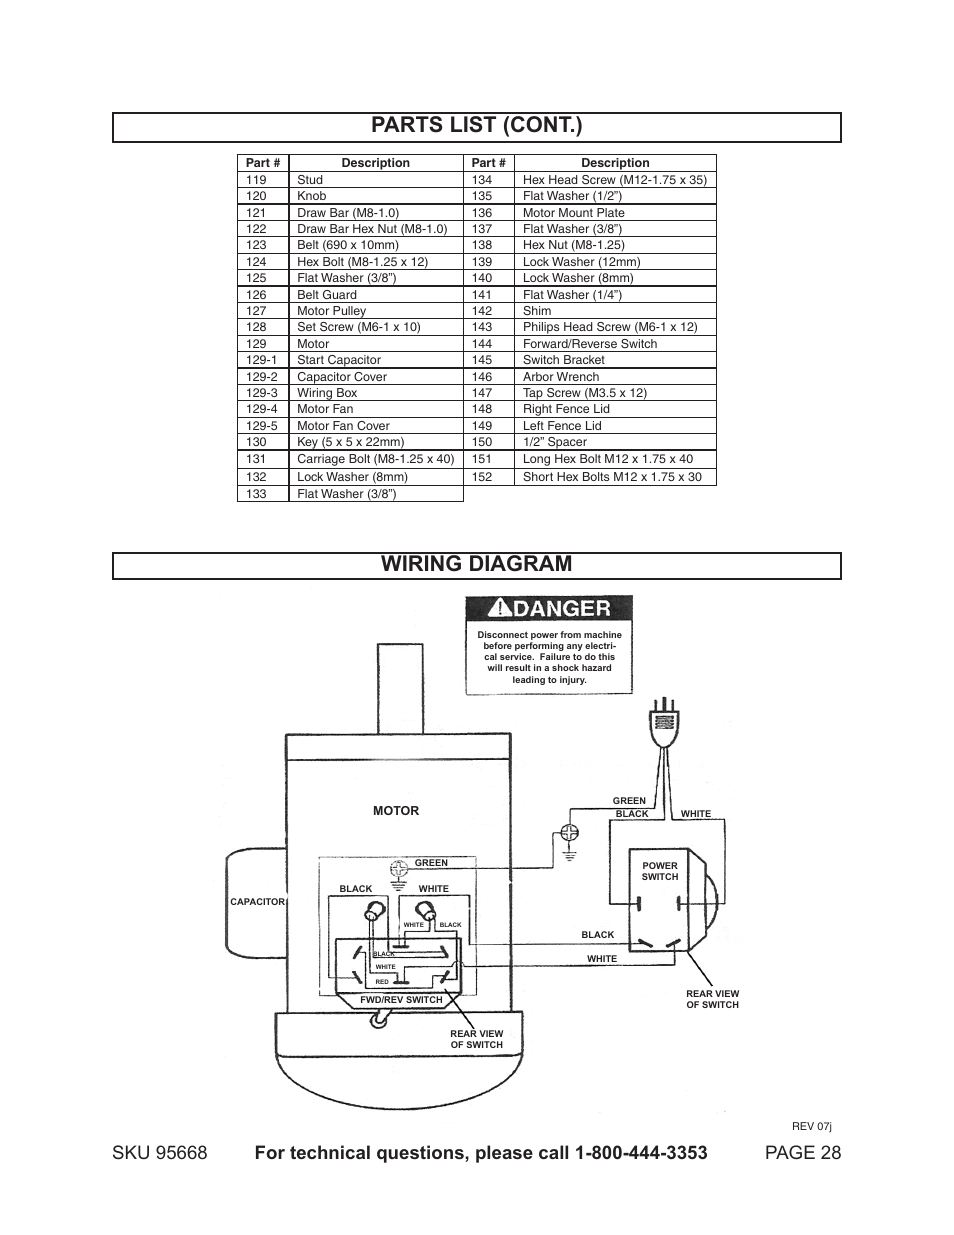 Parts List  Cont   Wiring Diagram